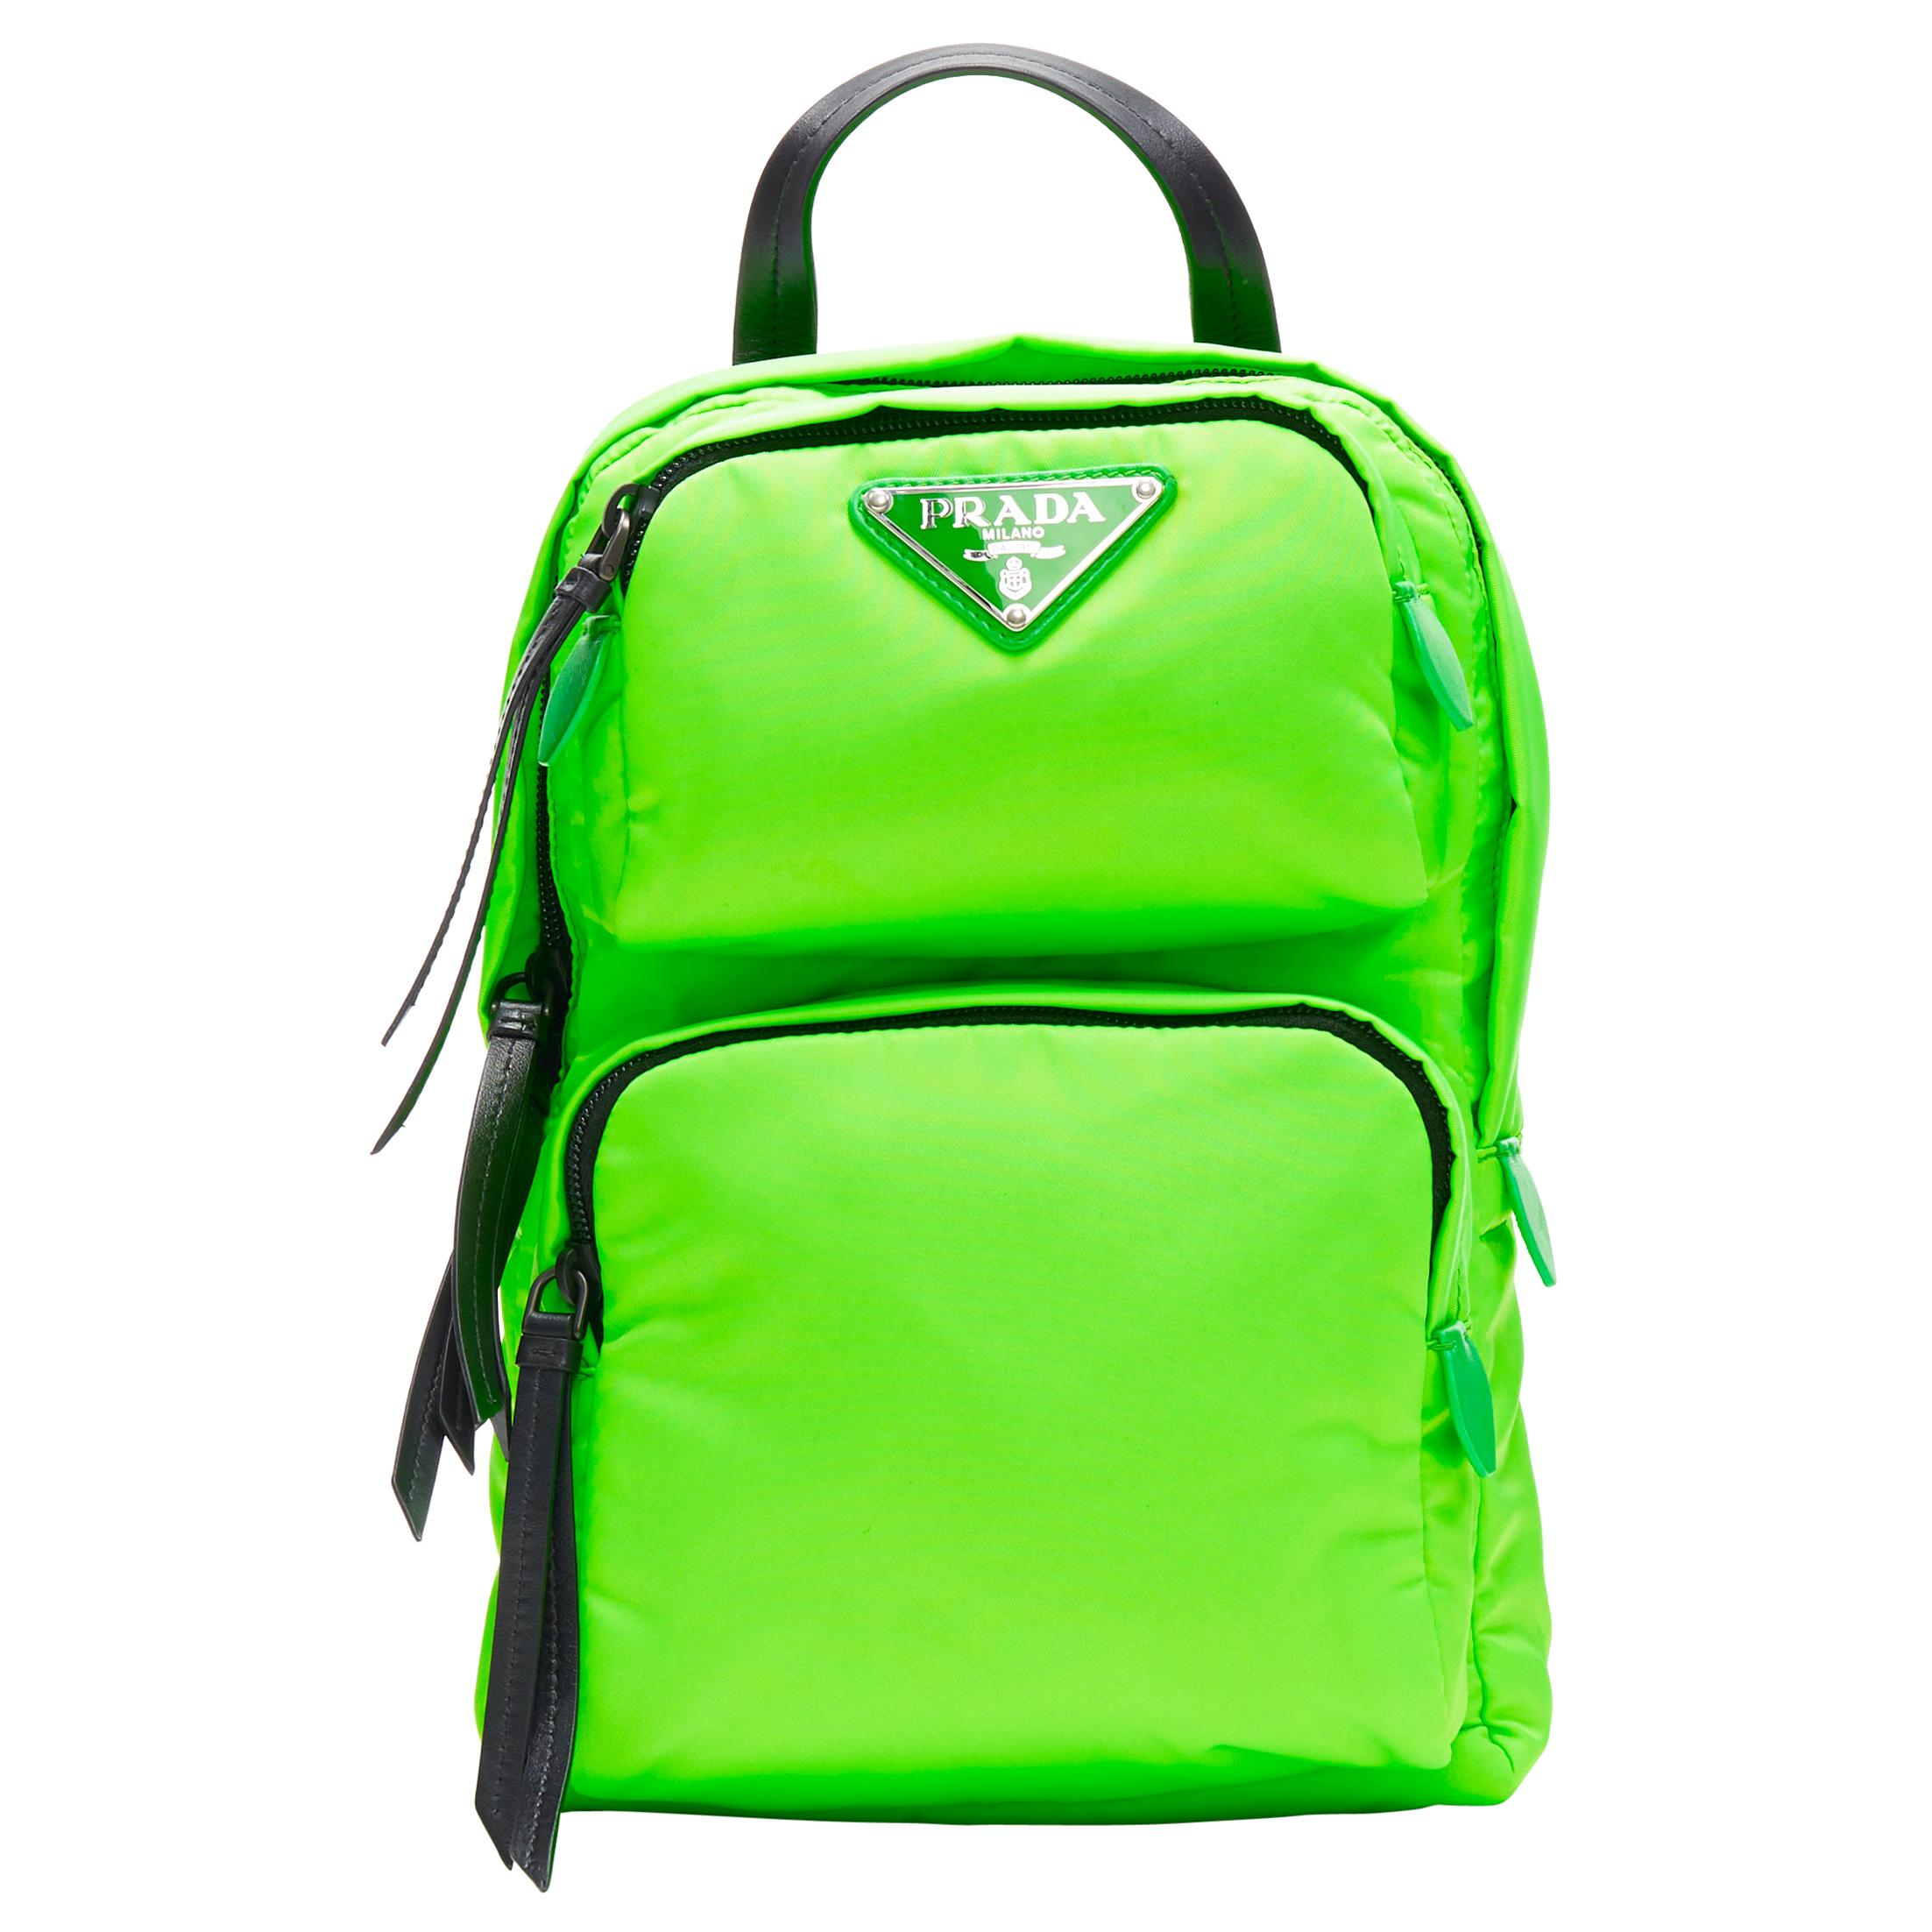 new PRADA 2018 Fluorescent neon green dual pocket one shoulder small backpack